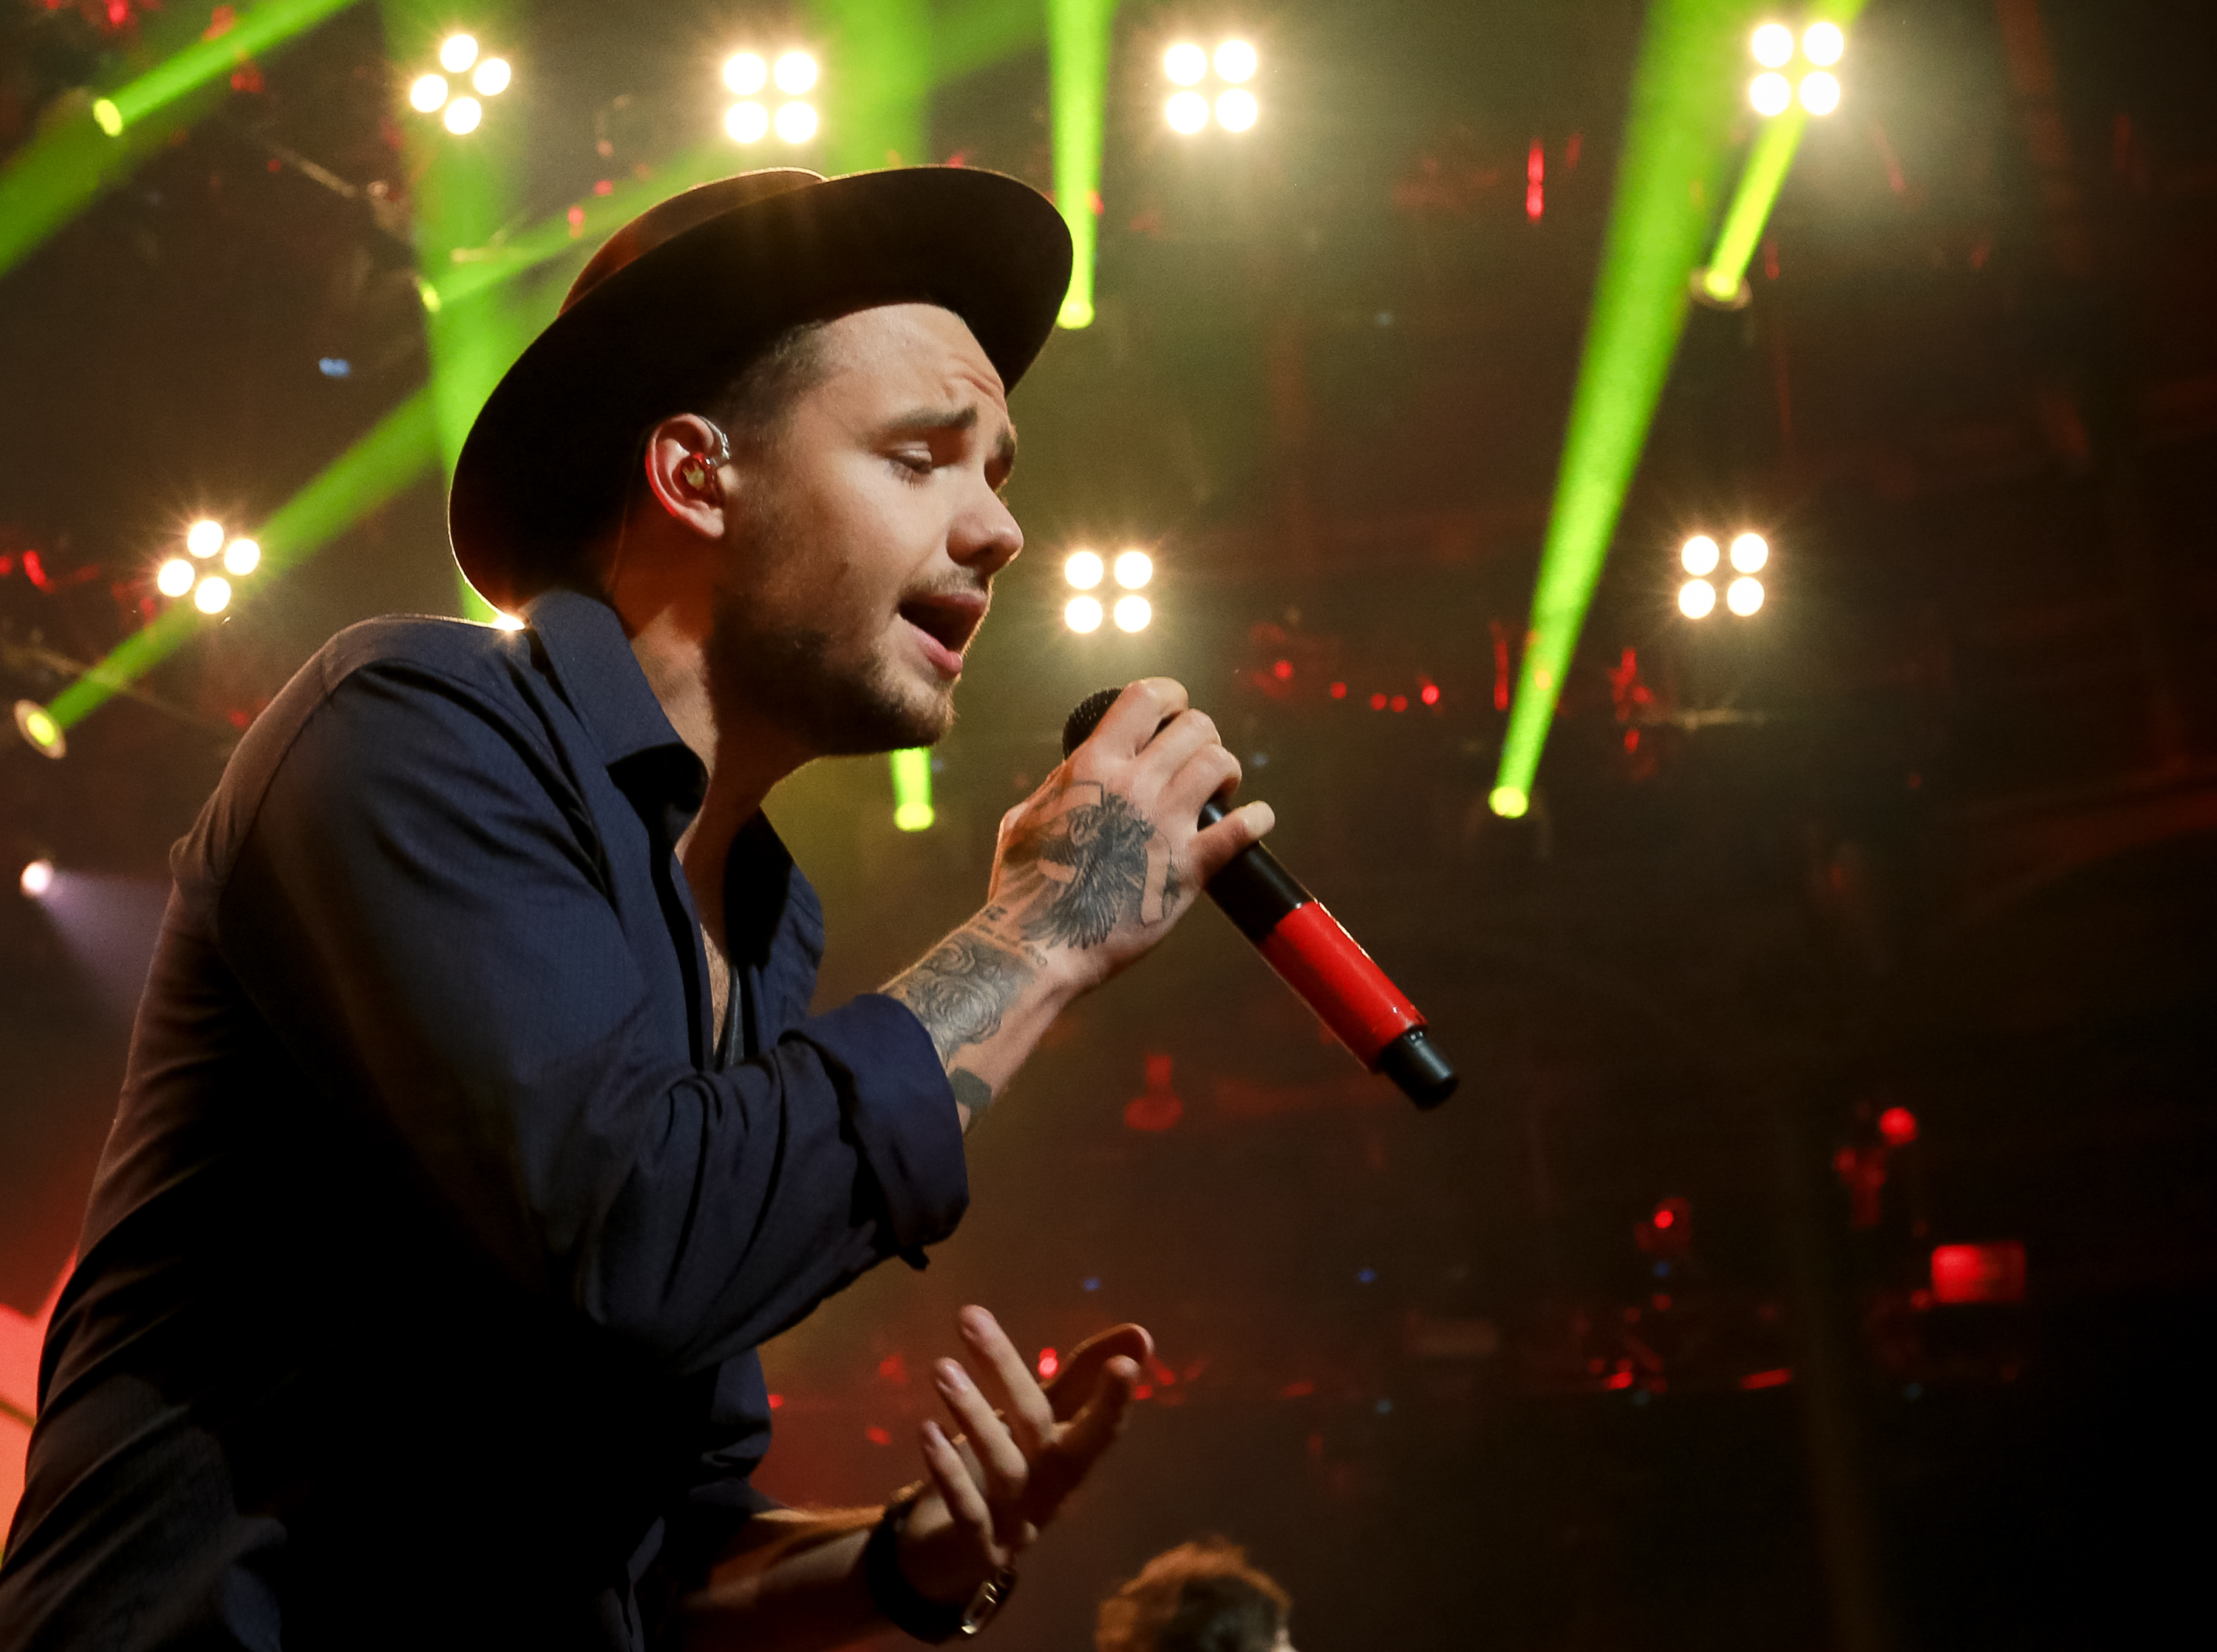 Liam Payne's new solo album isn't quite perfect yet, claims Conor Maynard